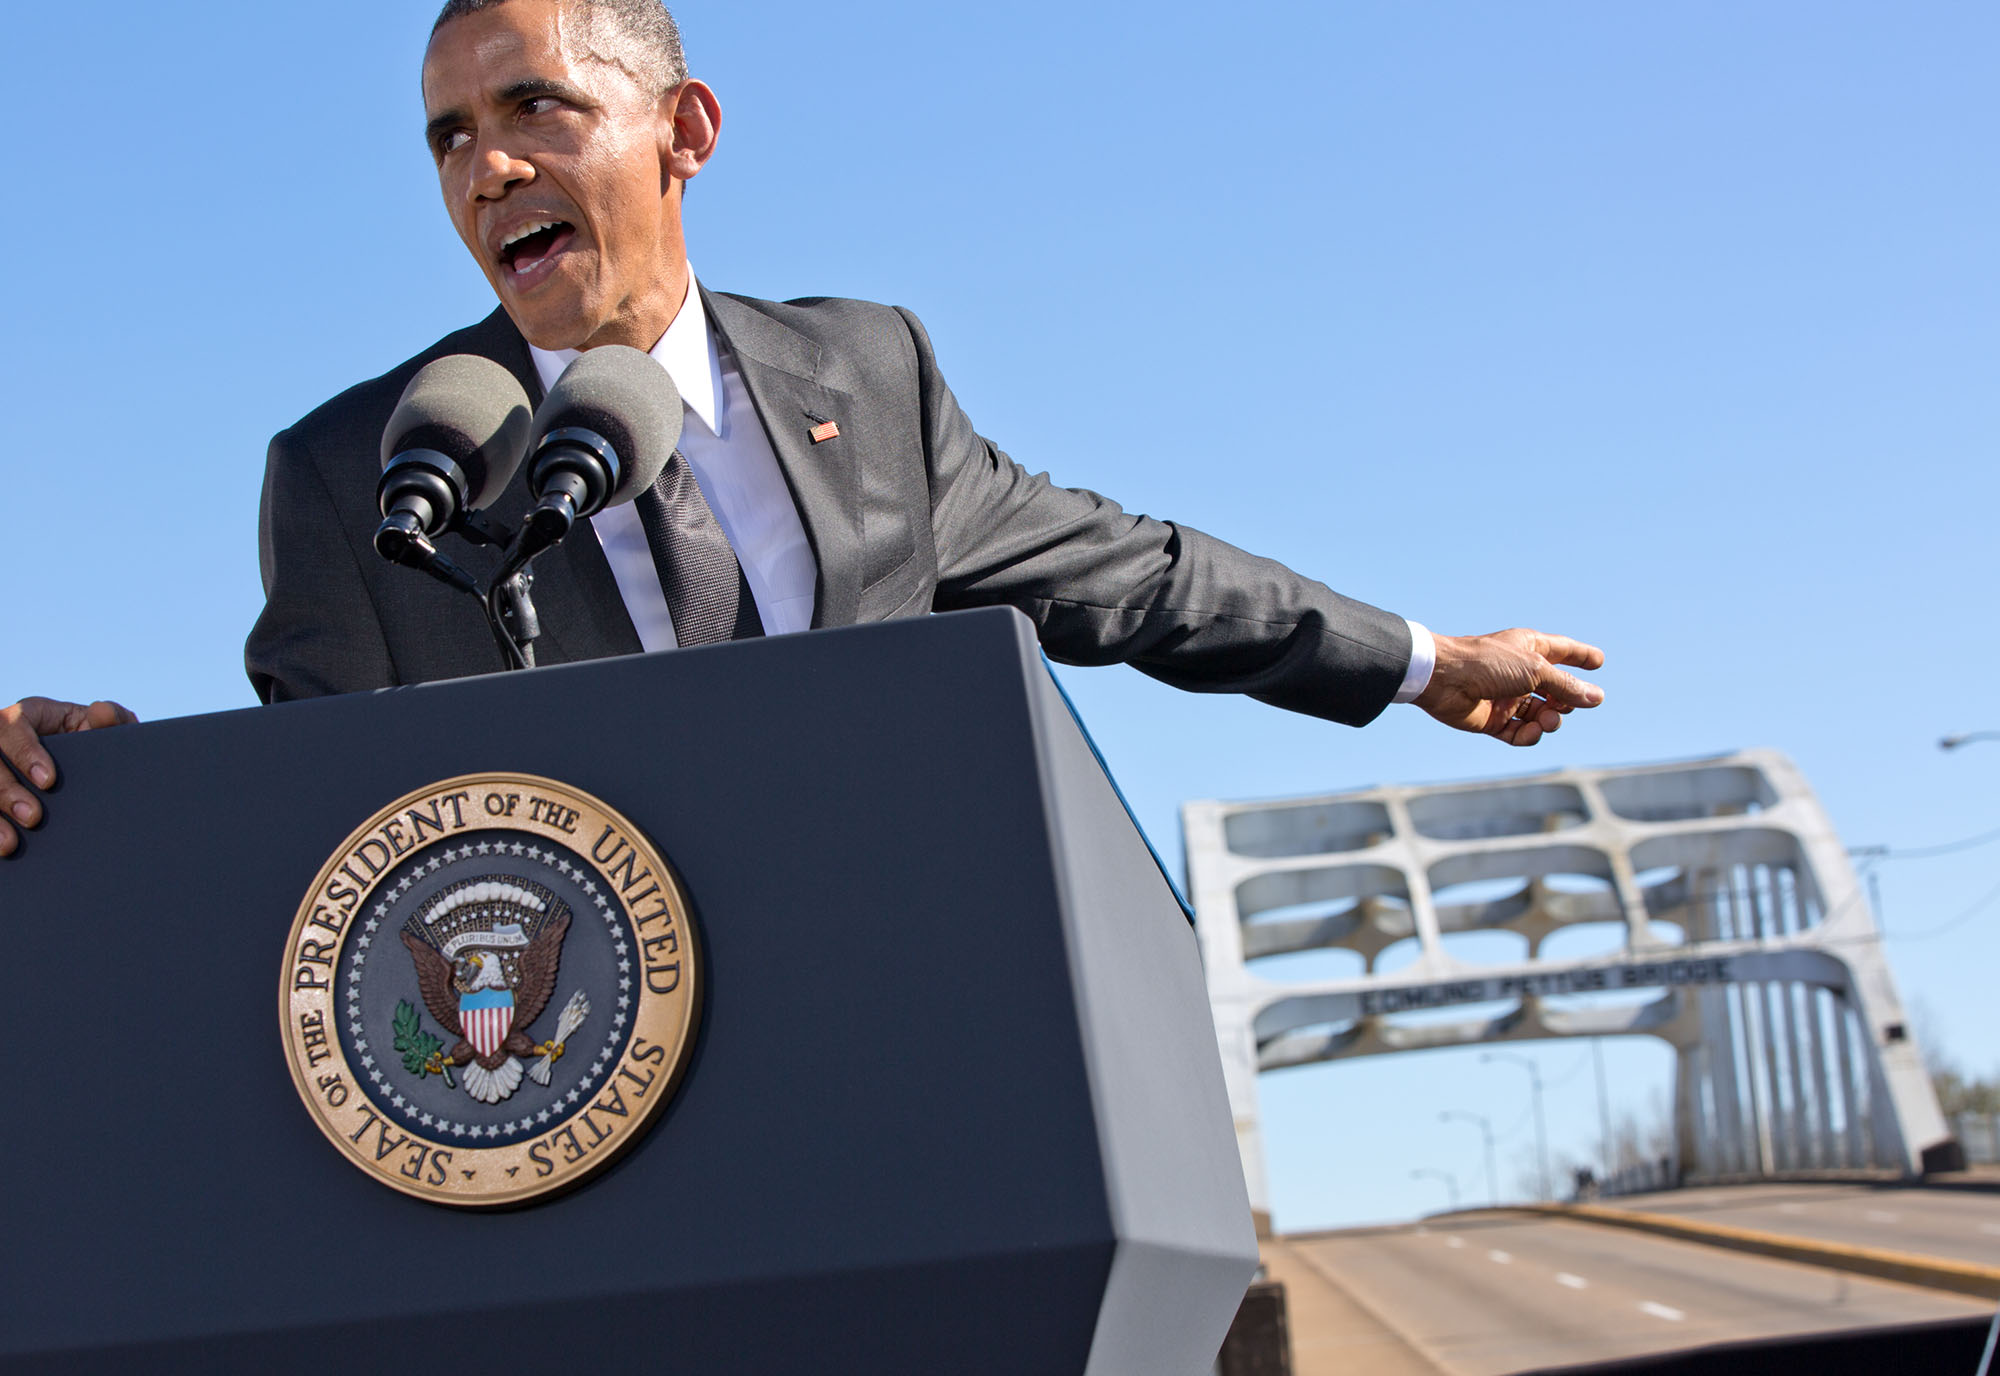 The President points towards the bridge during his speech. (Official White House Photo by Pete Souza)